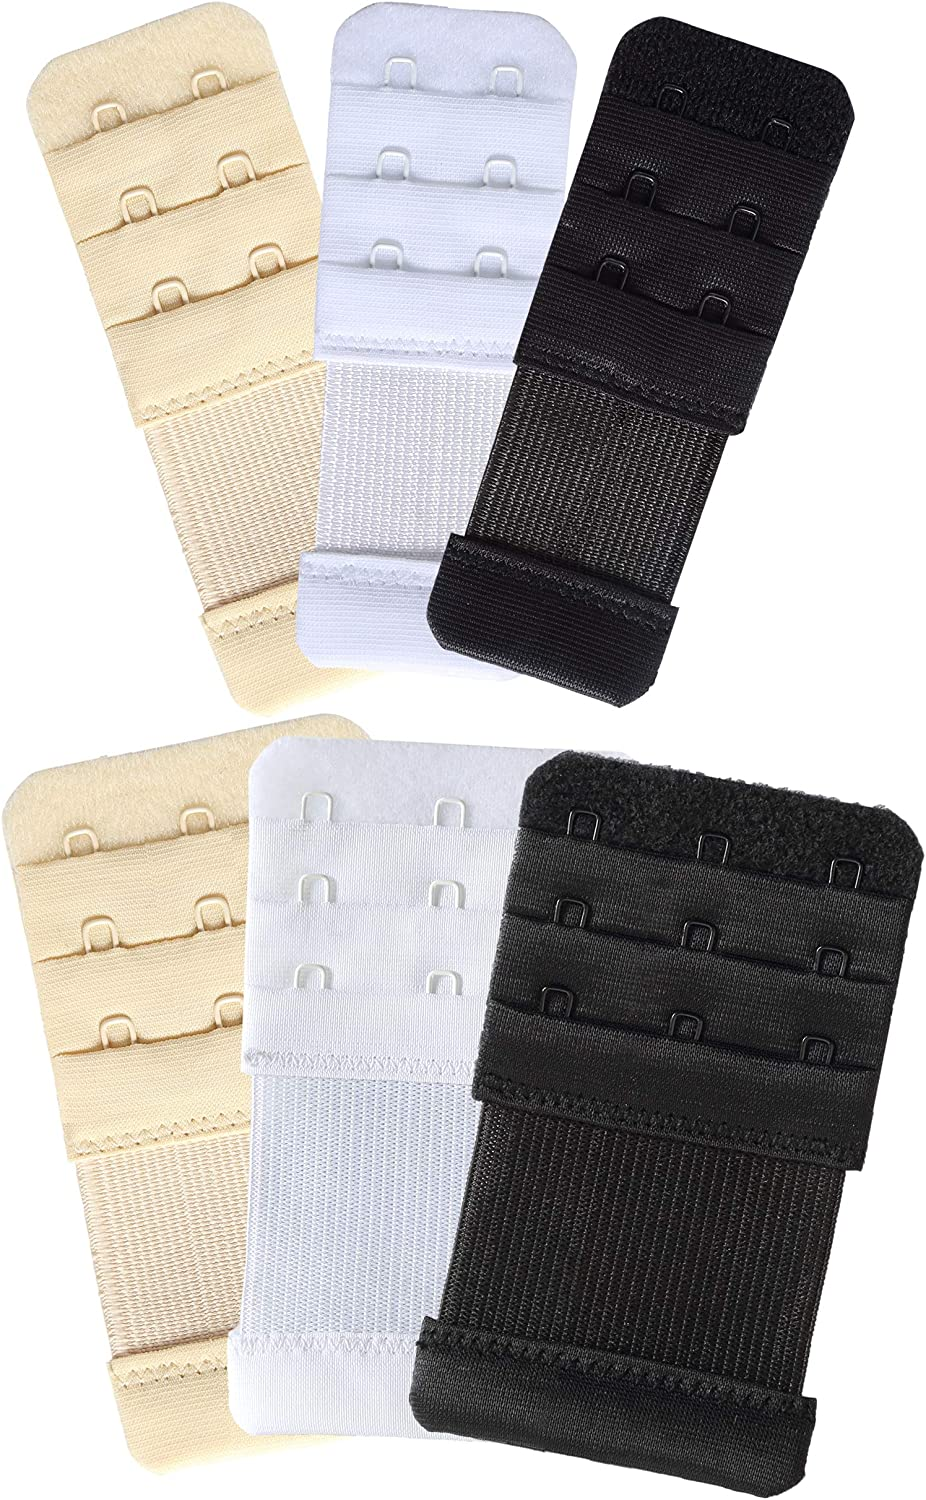 Details about  /Women/'s Bra Extenders 3 Hook Elastic Stretchy Bra Extension Strap Pack of 3